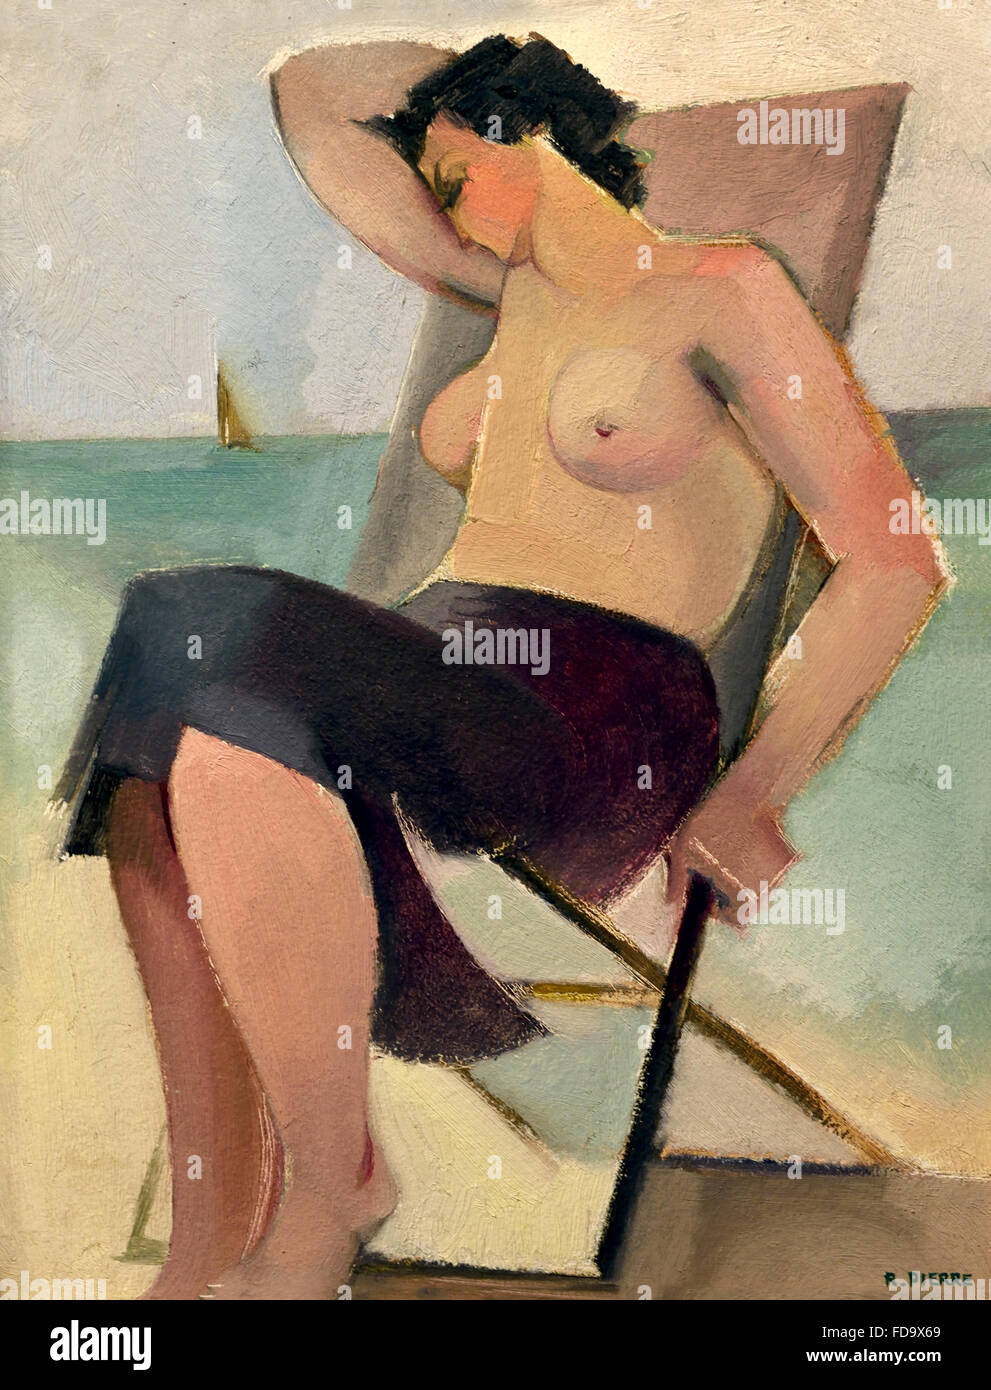 Orleans Bather 1930 by Roger Pierre  France French Painter - Stock Image